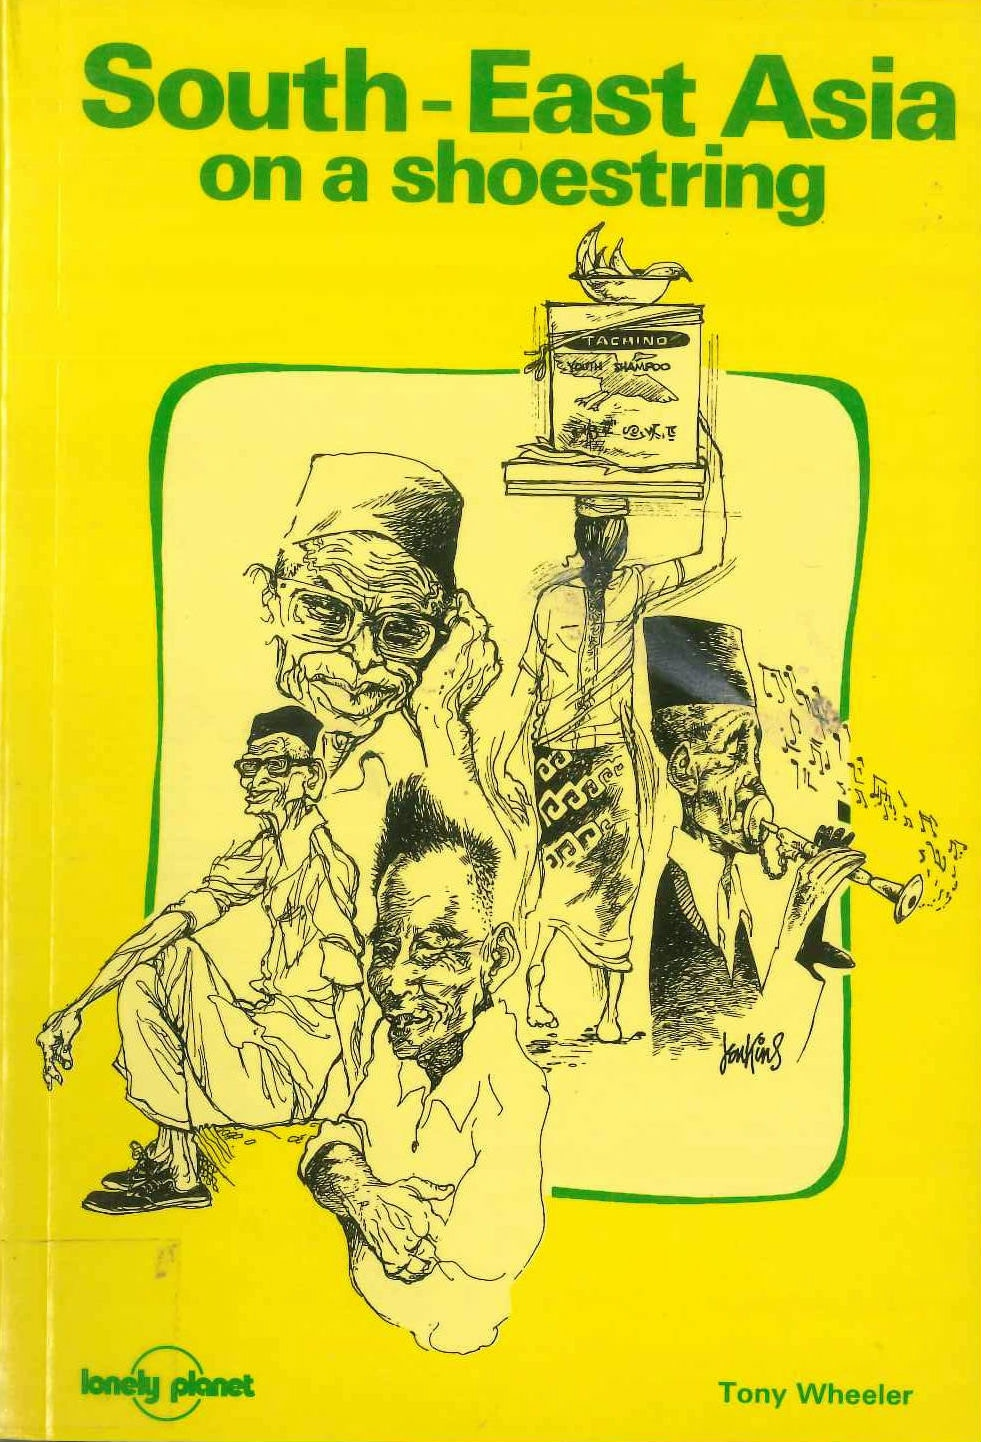 The 1975 edition of South-East Asia on a shoestring featuring the slightly more refined logo and some illustrations © Lonely Planet